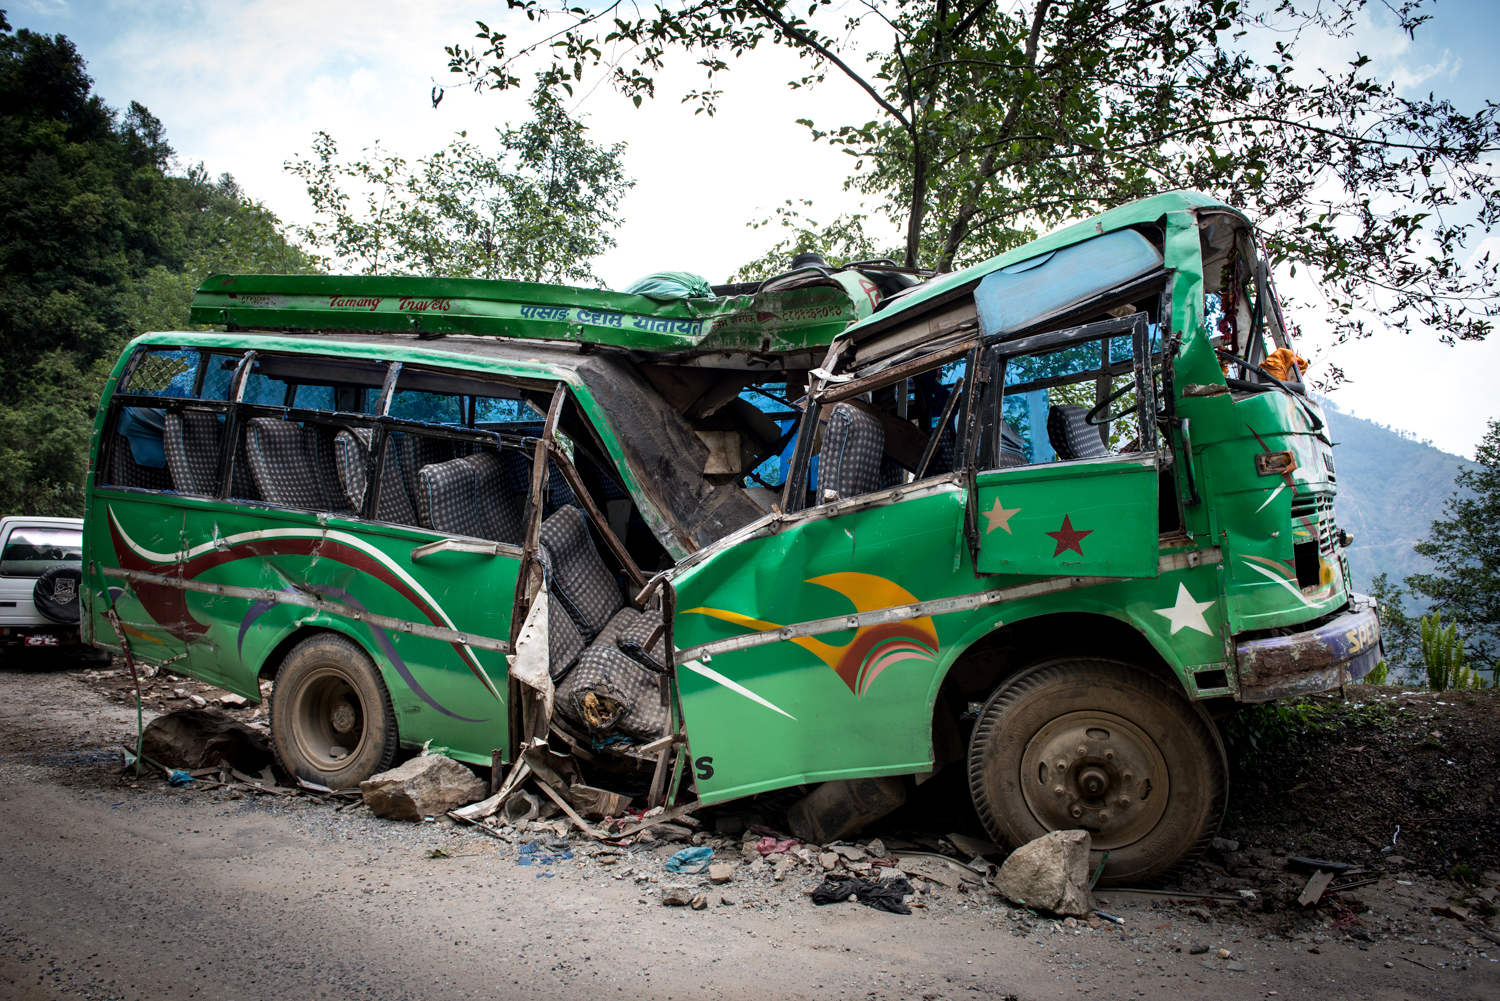 On our way driving to drop supplies off in Newakot, we came across a bus that had been hit by a rock unleashed by one of the aftershocks. Surprisingly, only 2 of the 55 passengers were killed upon impact.